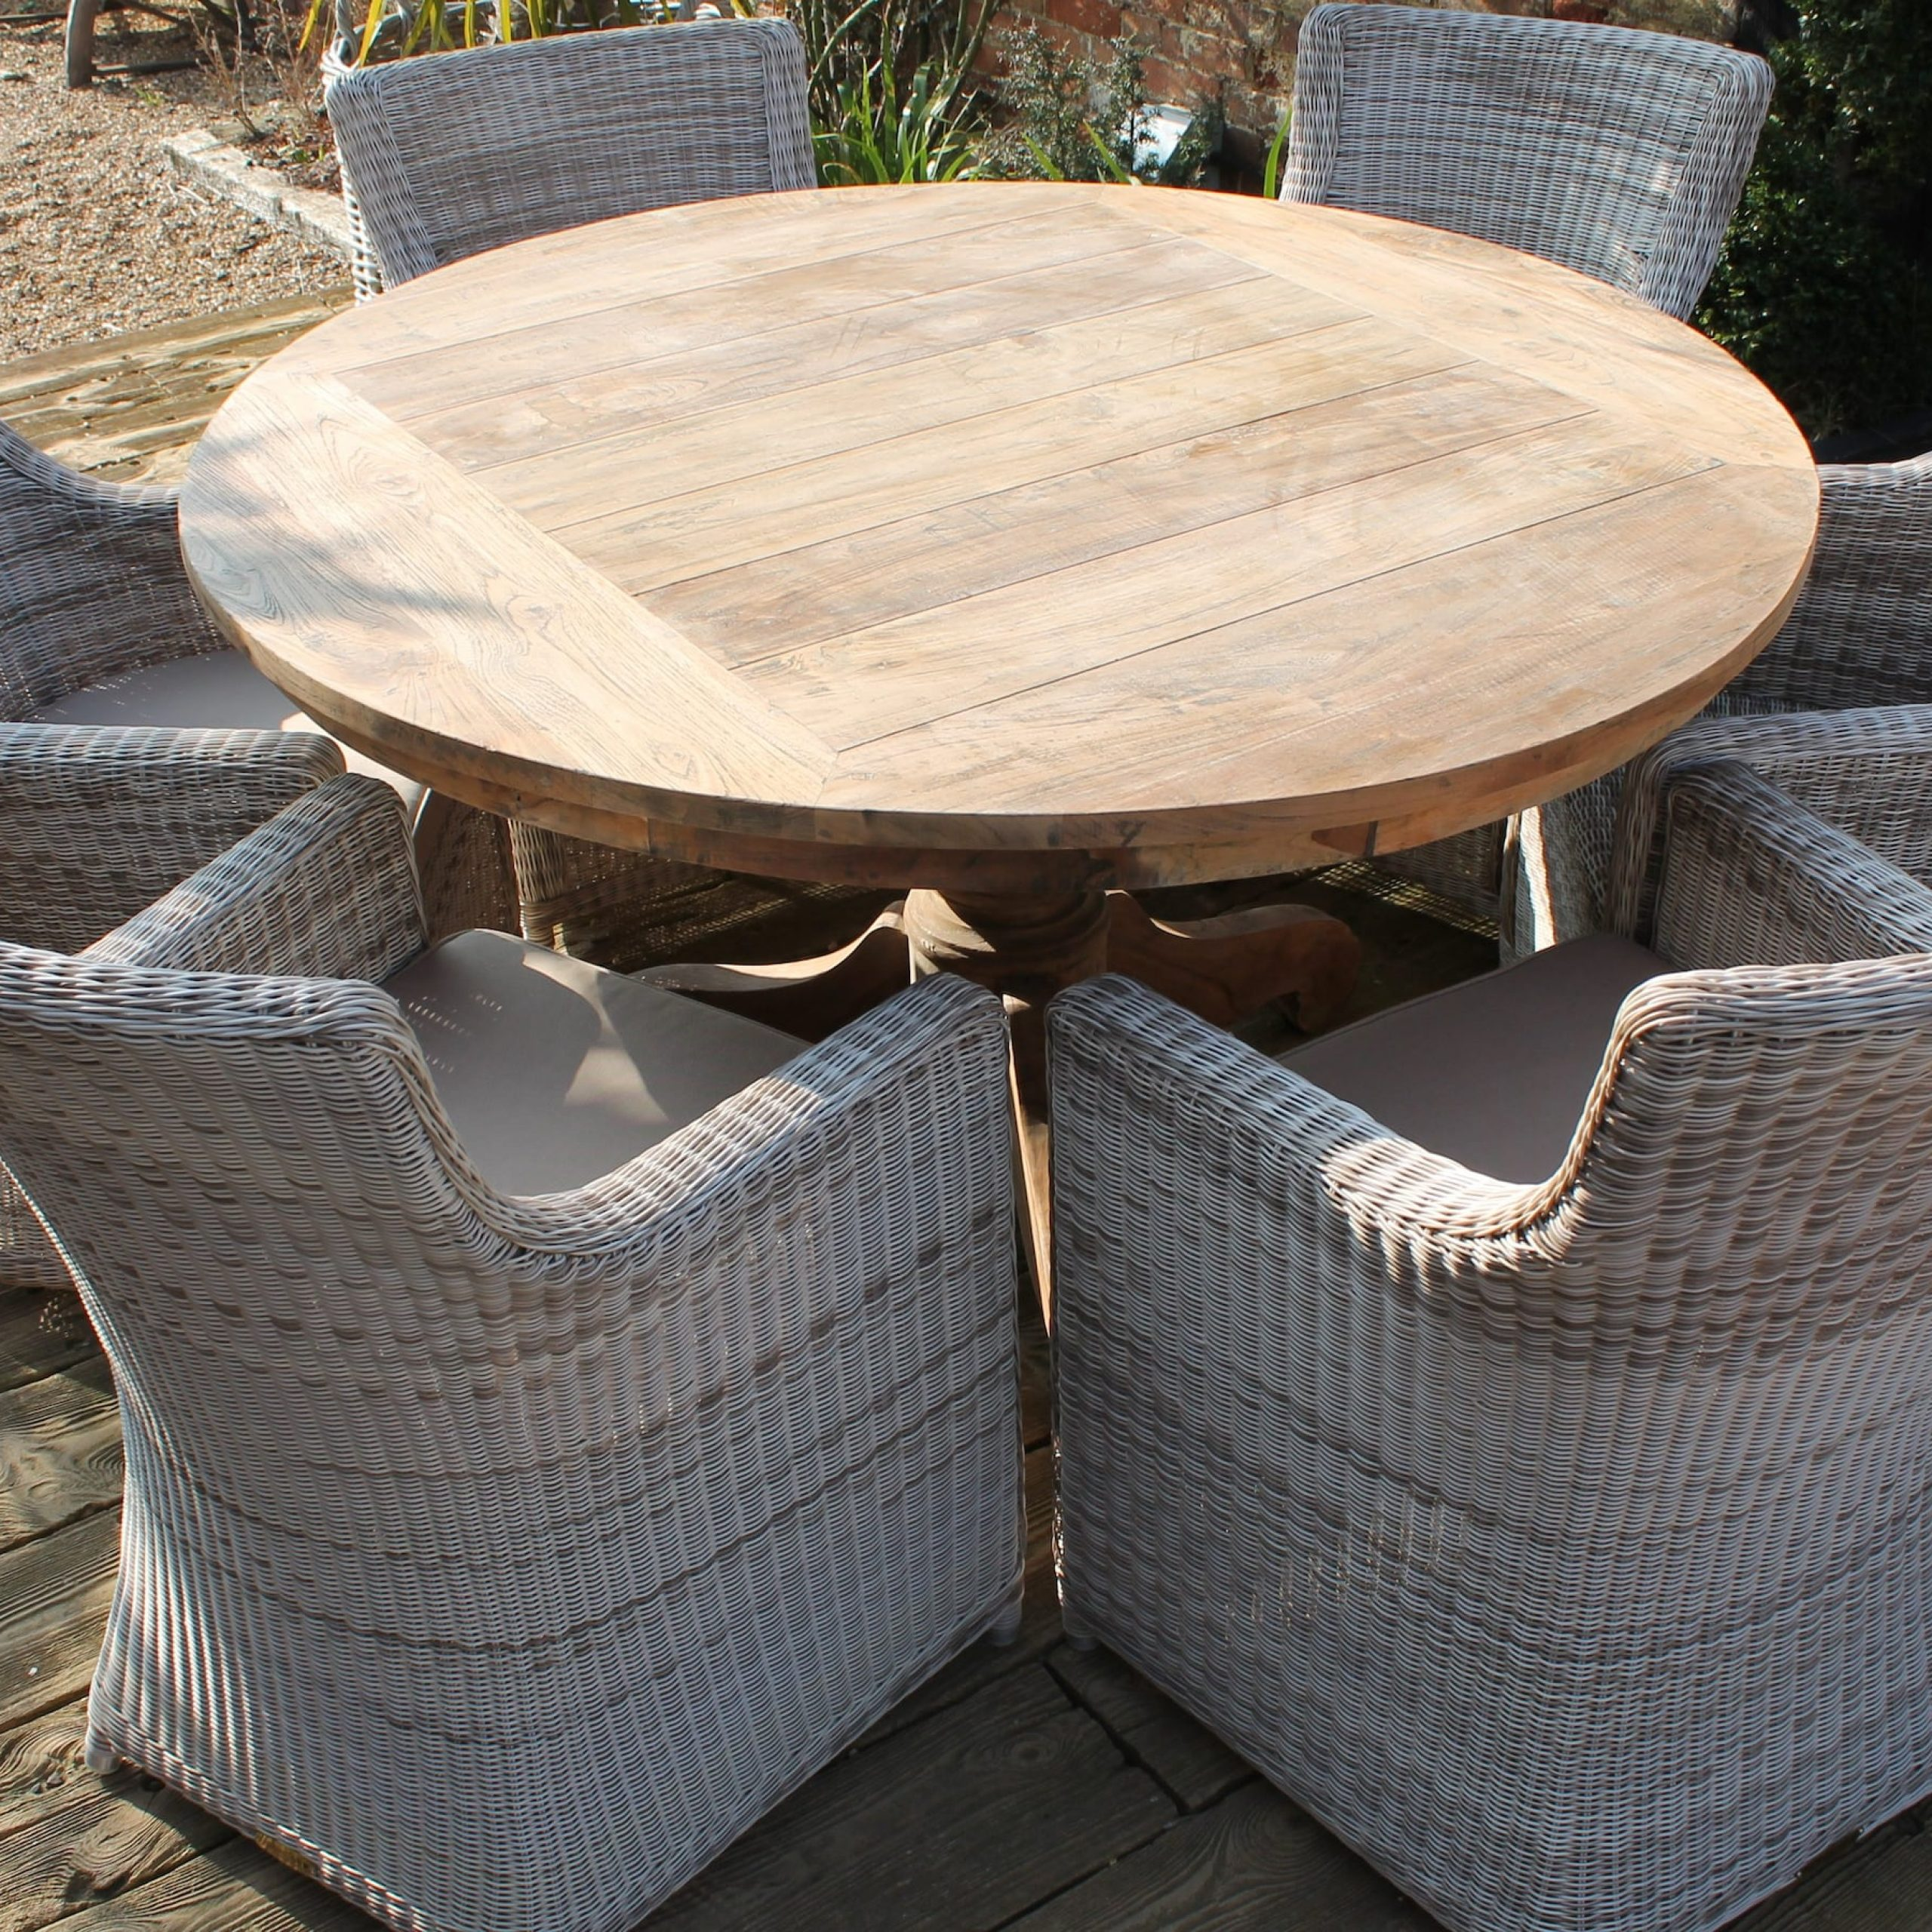 Best Rattan Garden Furniture – And Where To Buy It | The For Outdoor Wicker Plastic Half Moon Leaf Shape Porch Swings (View 14 of 25)